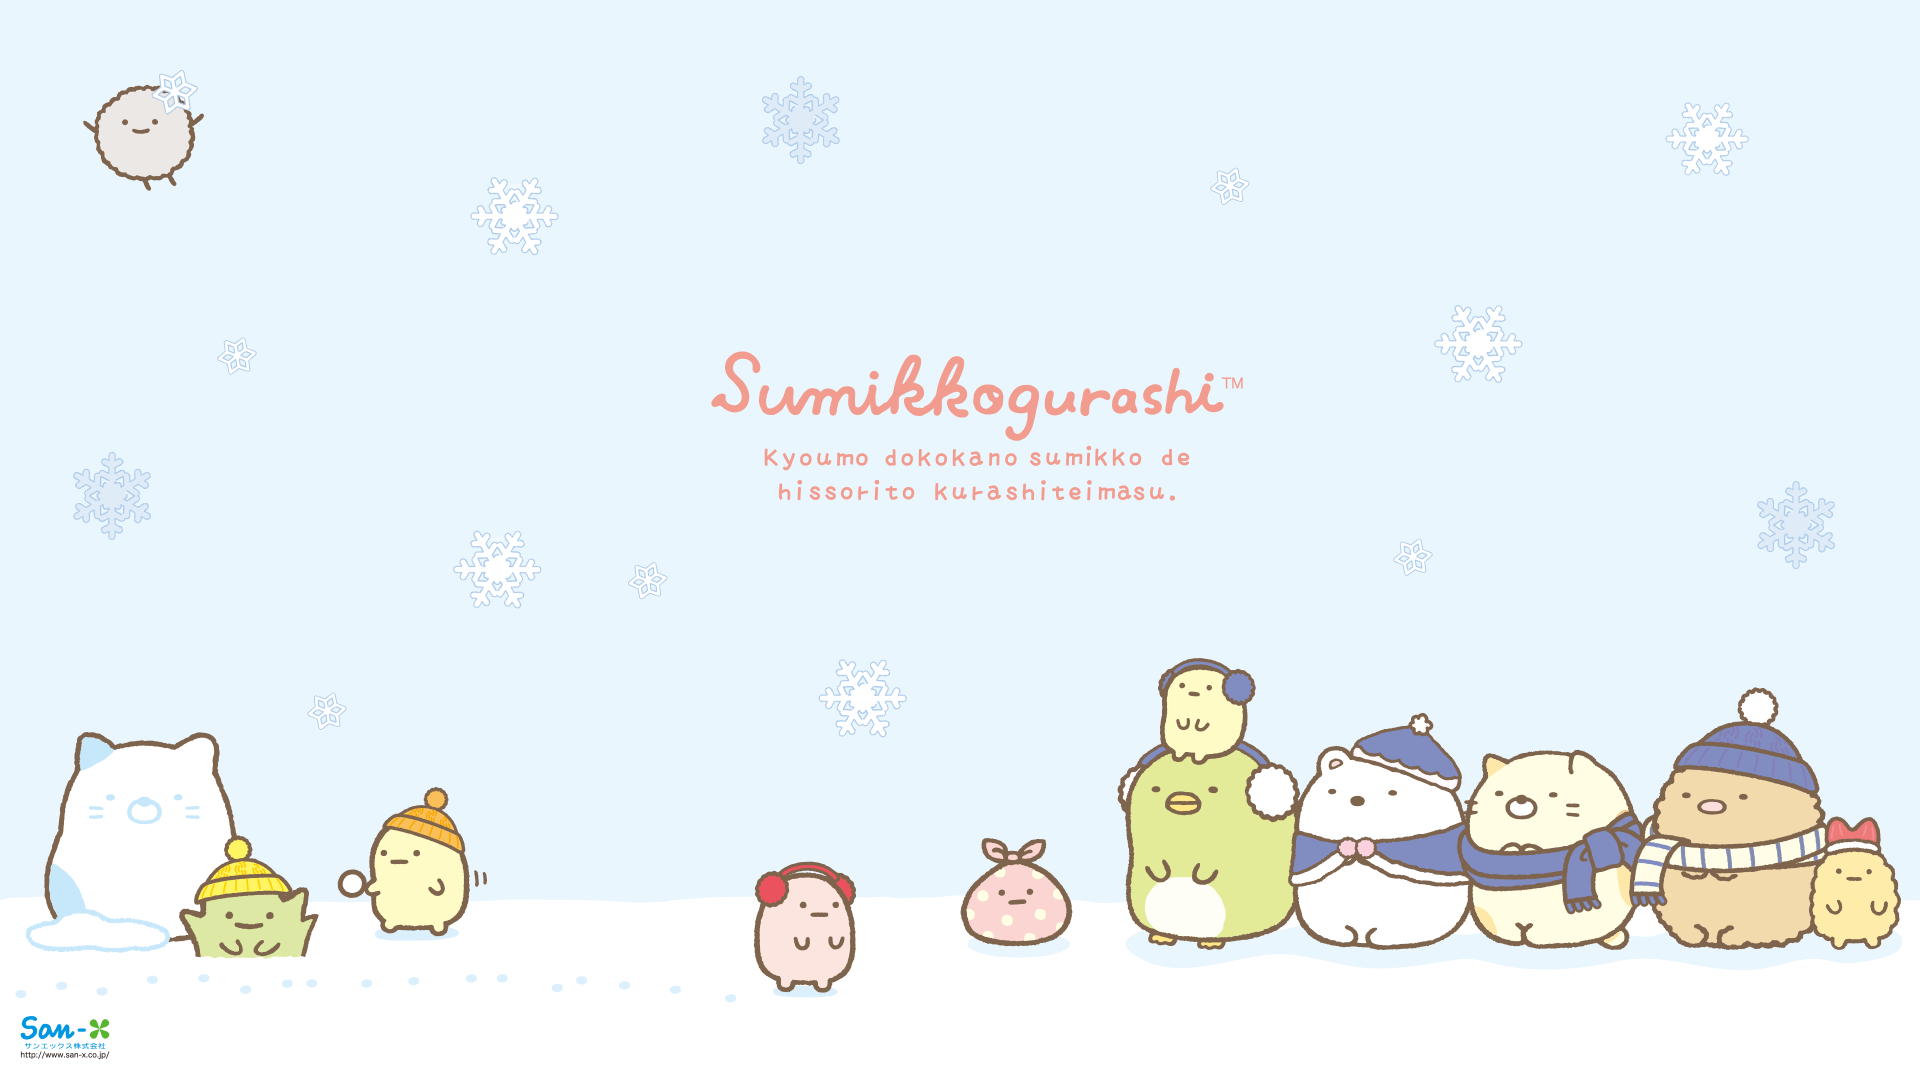 Wallpaper iphone san x - New Sumikkogurashi Christmas Wallpaper Living Quietly In The Corner Such A Cute Bunch In The Snow Sumikkogurashi Is So Cute And Random This Is San X S